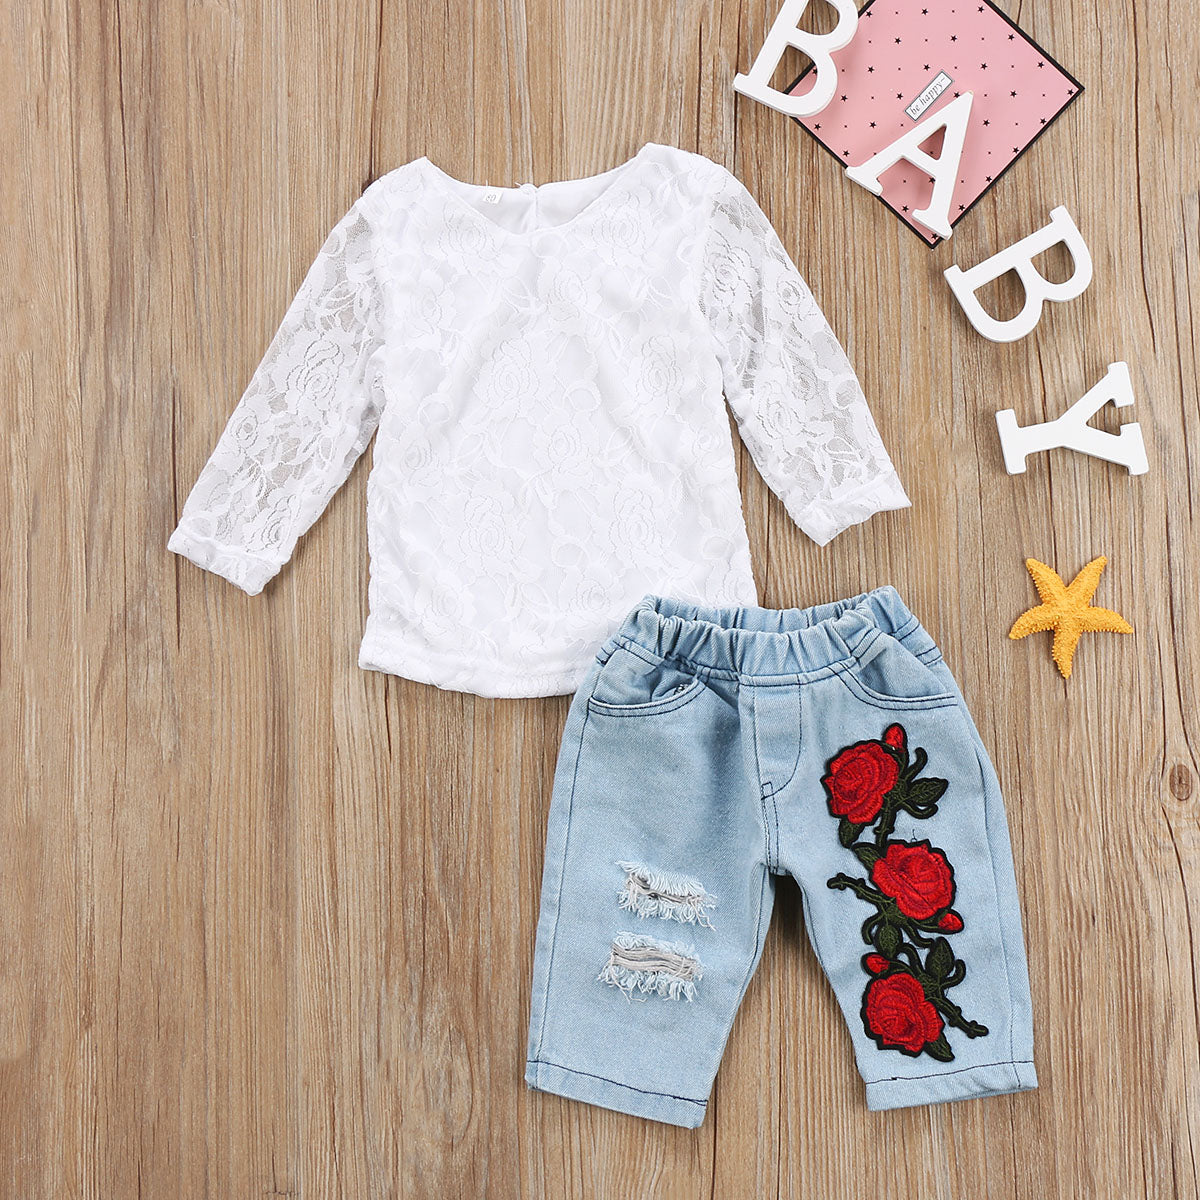 Long Sleeves Lace Shirt + Embroidered Floral Jeans